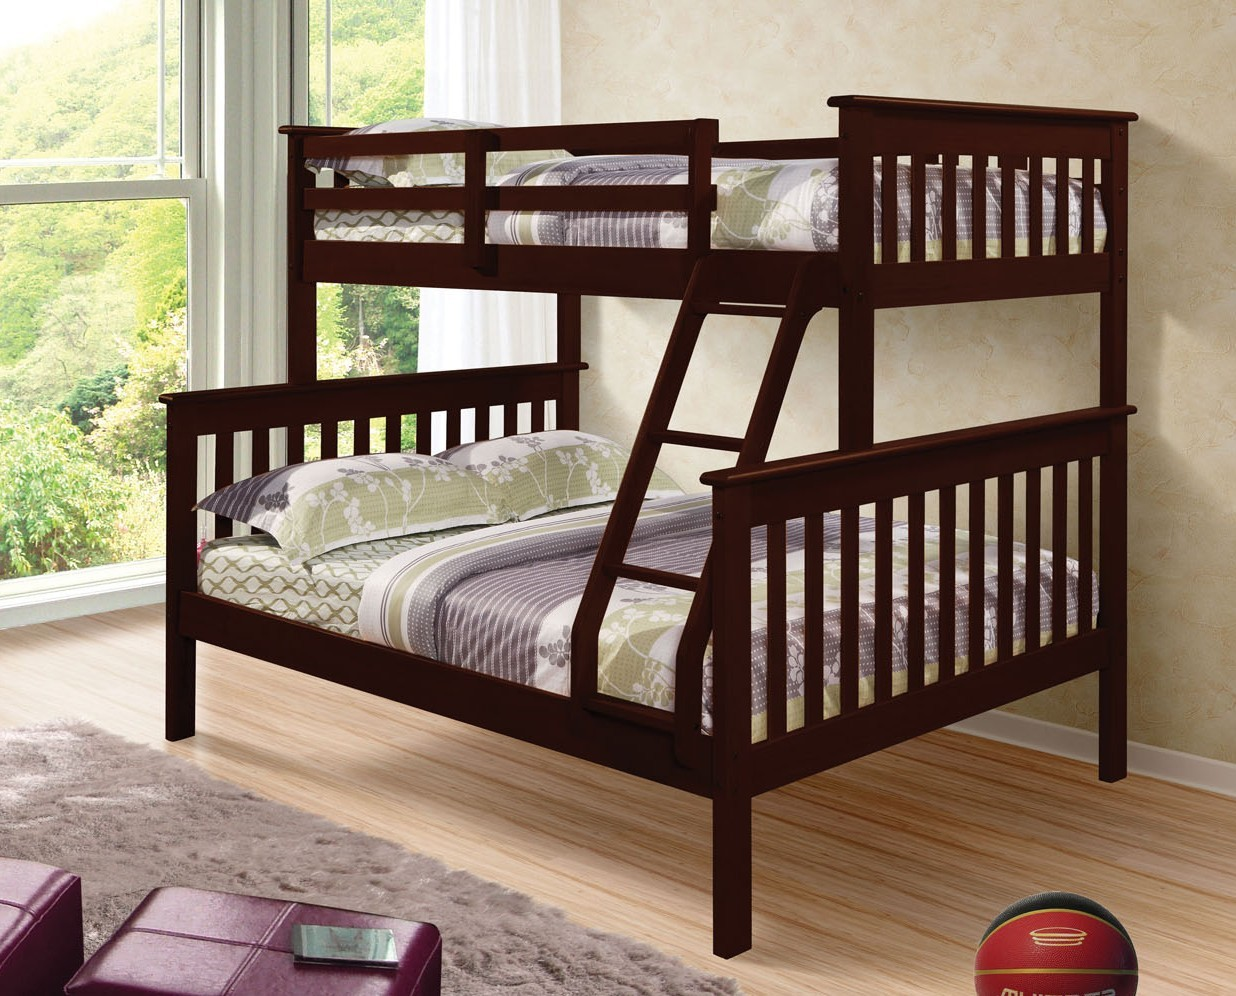 122-3CP_TF_Mission Bunk Bed